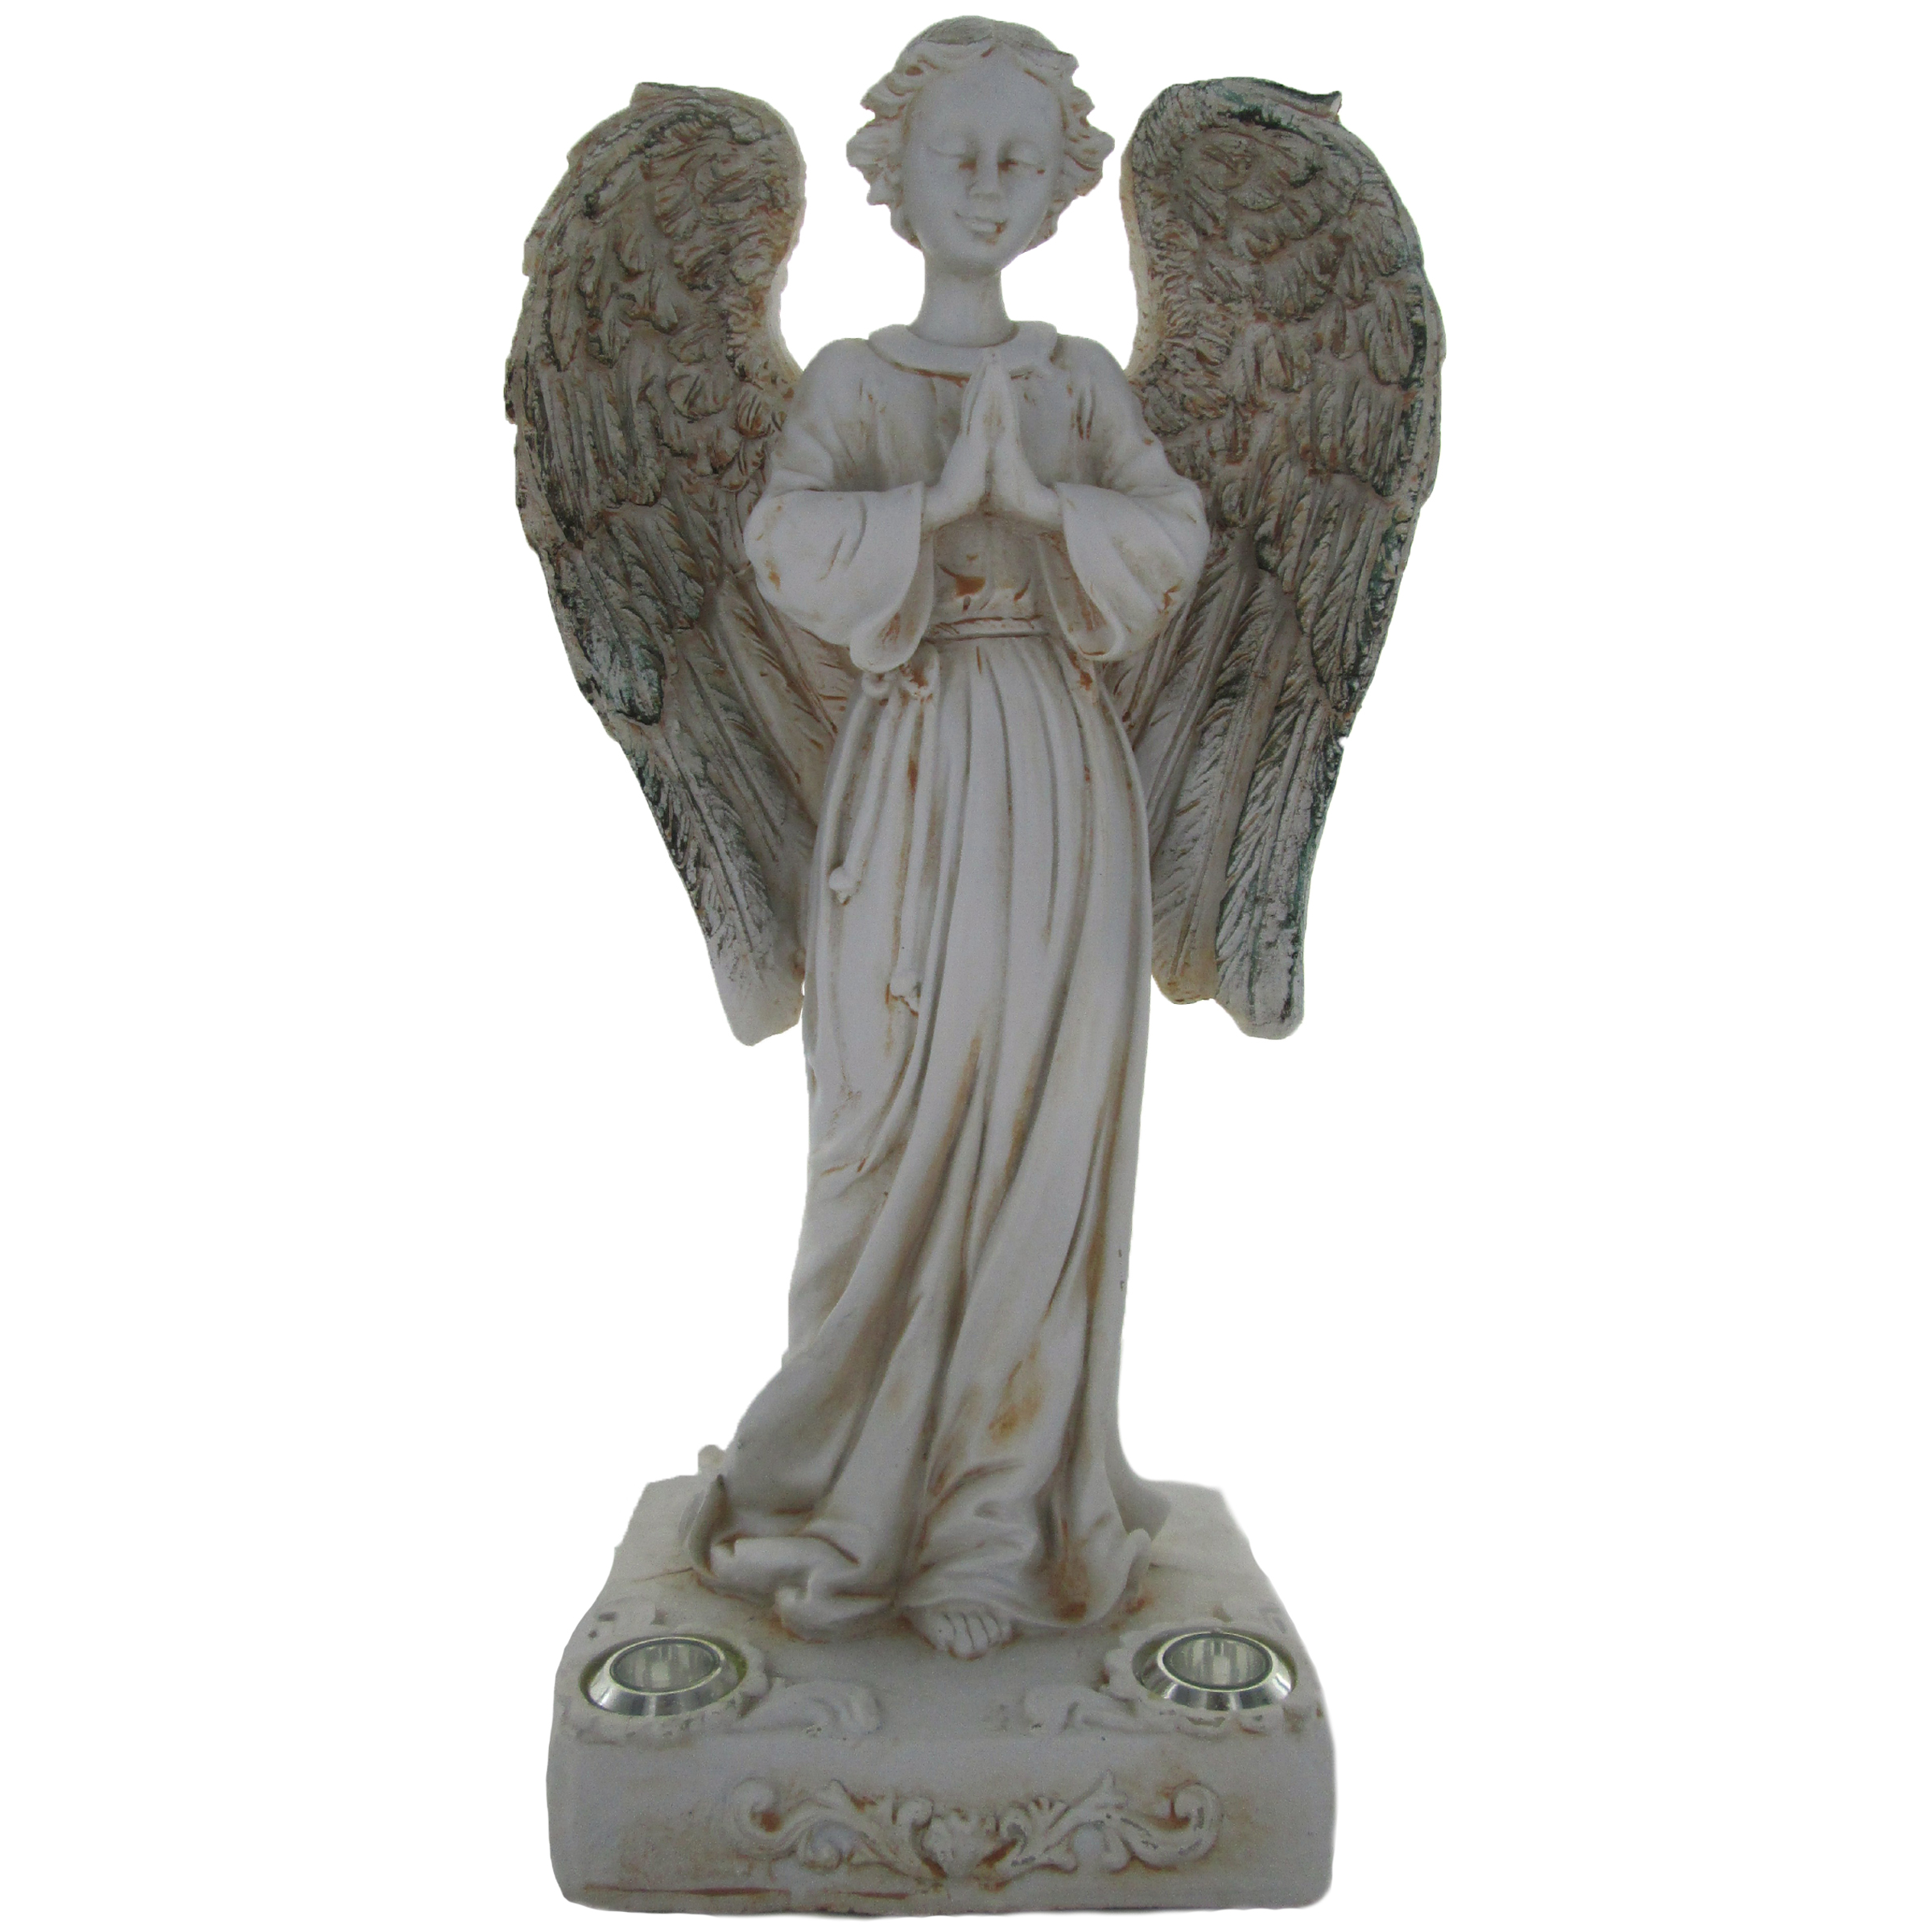 2400x2400 Praying Angel Statue Images